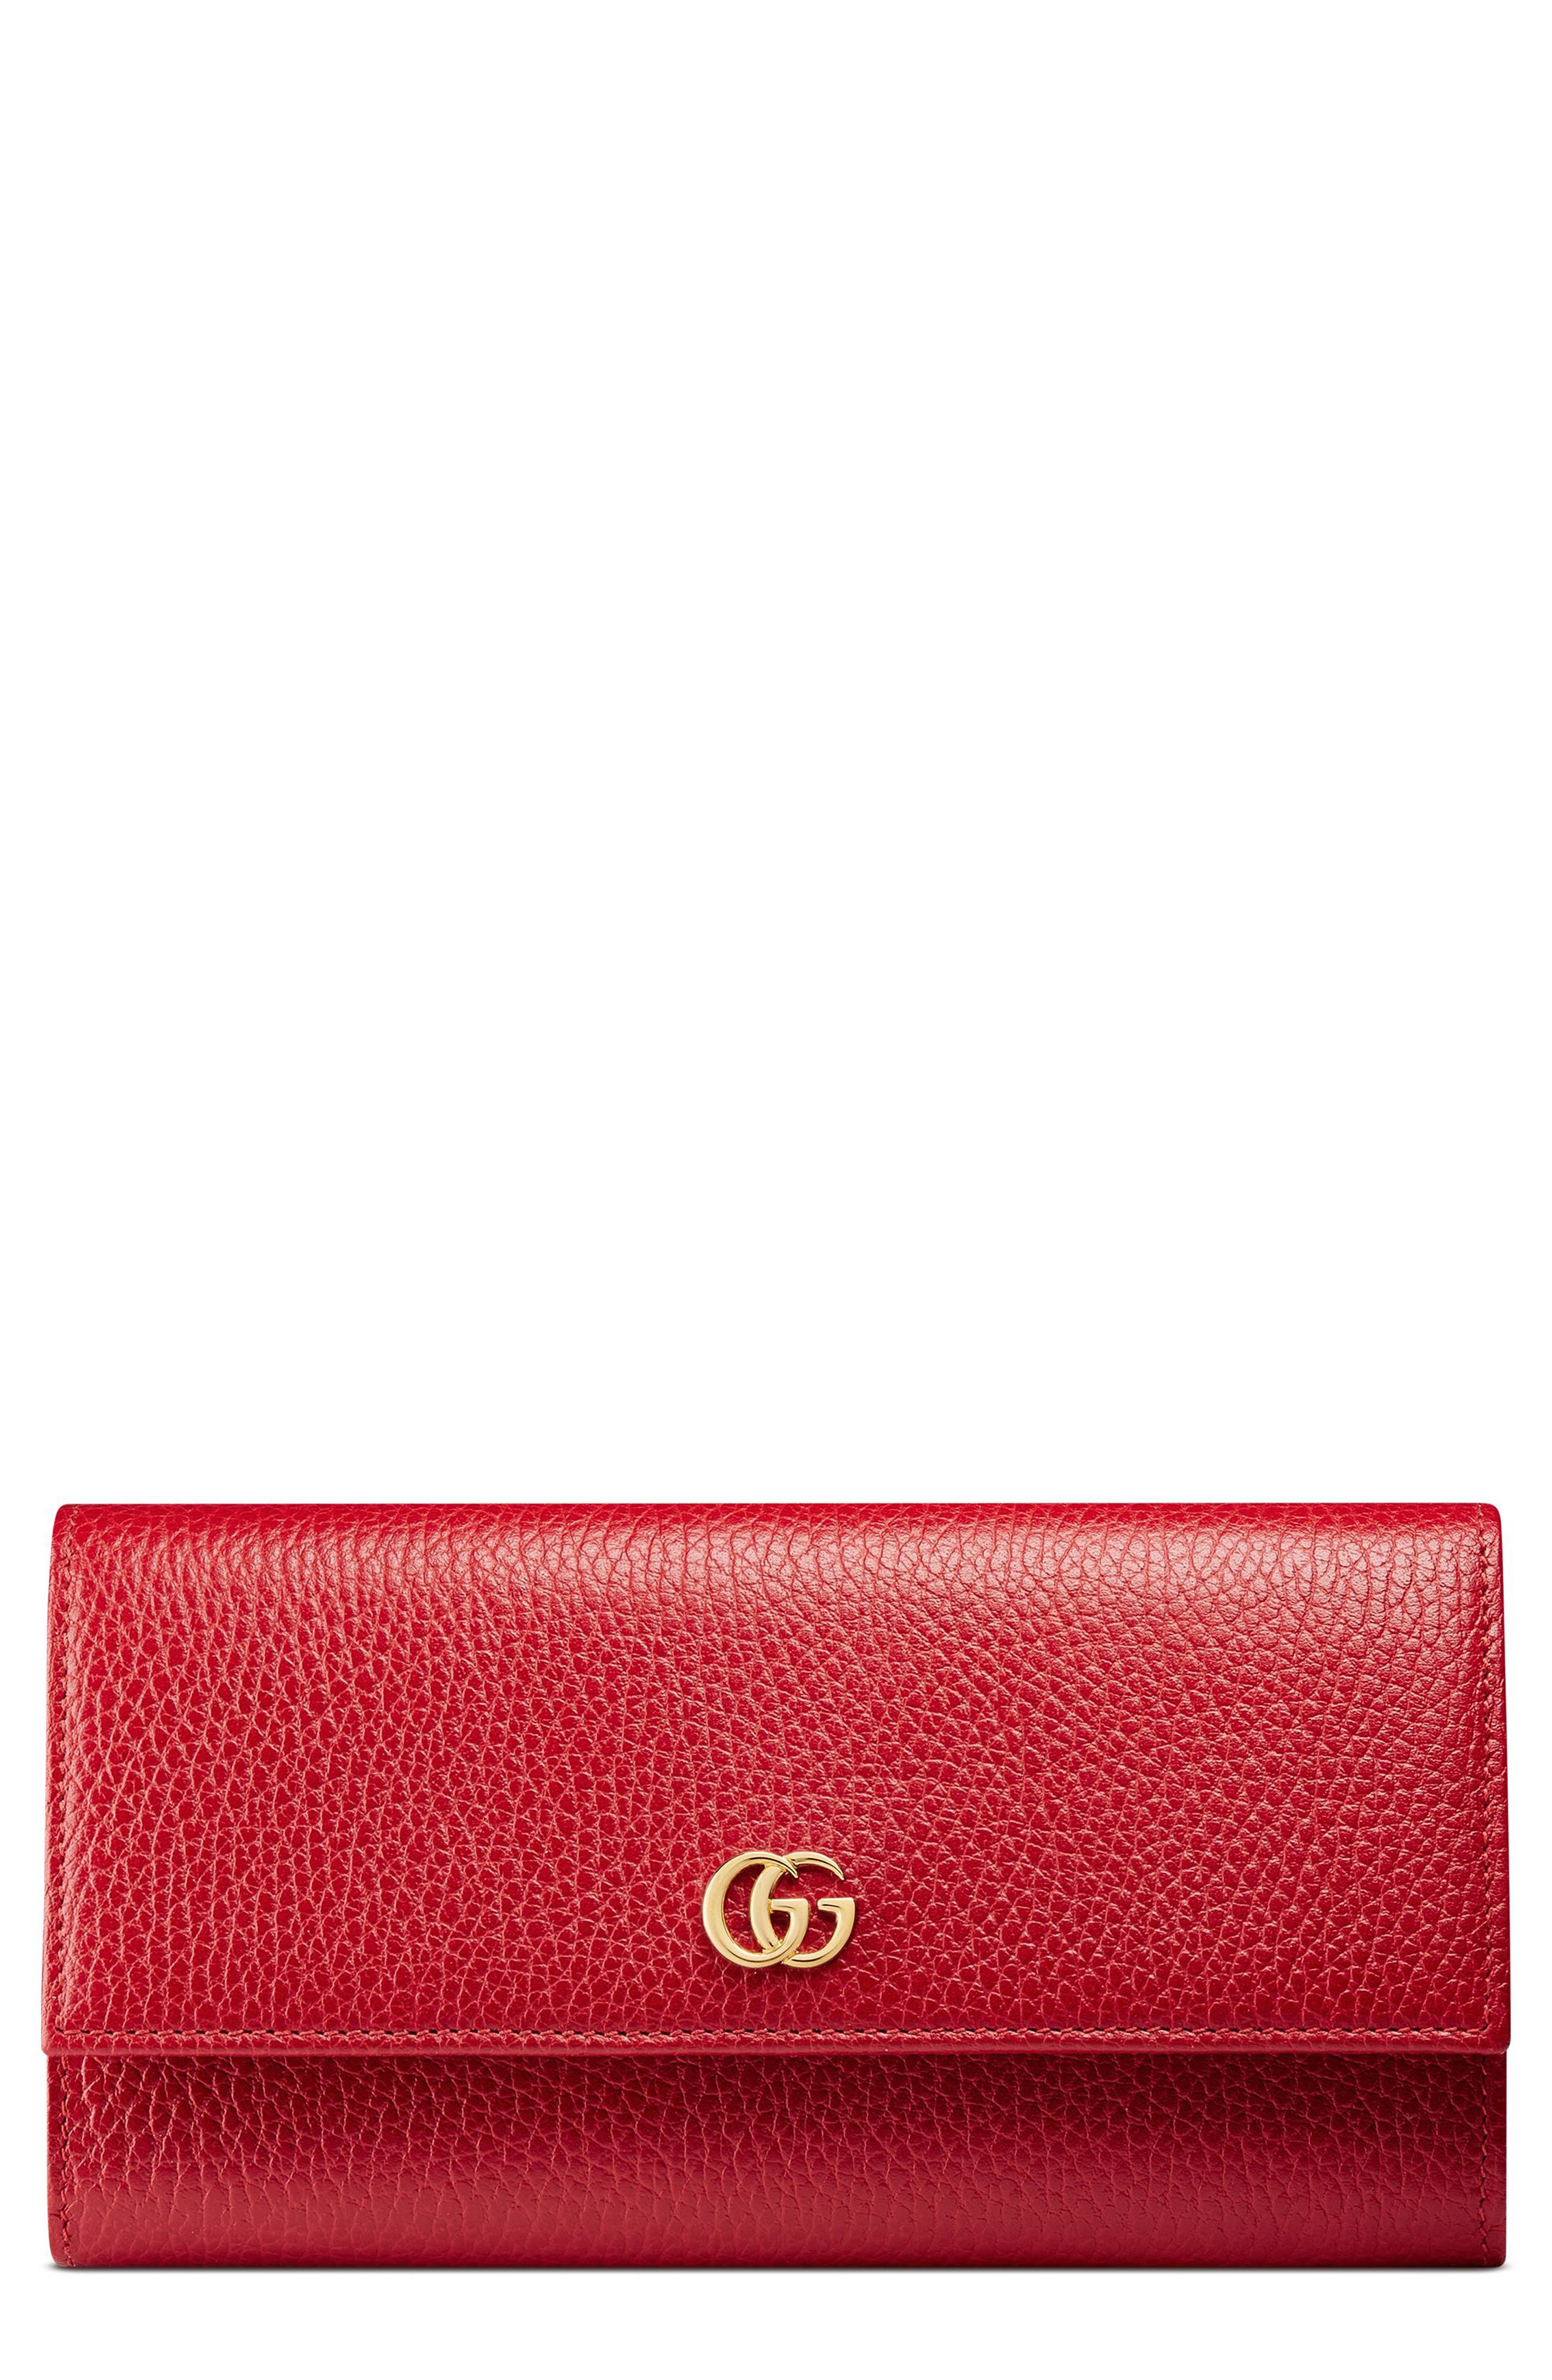 GUCCI Petite Marmont Leather Continental Wallet, Main, color, 625